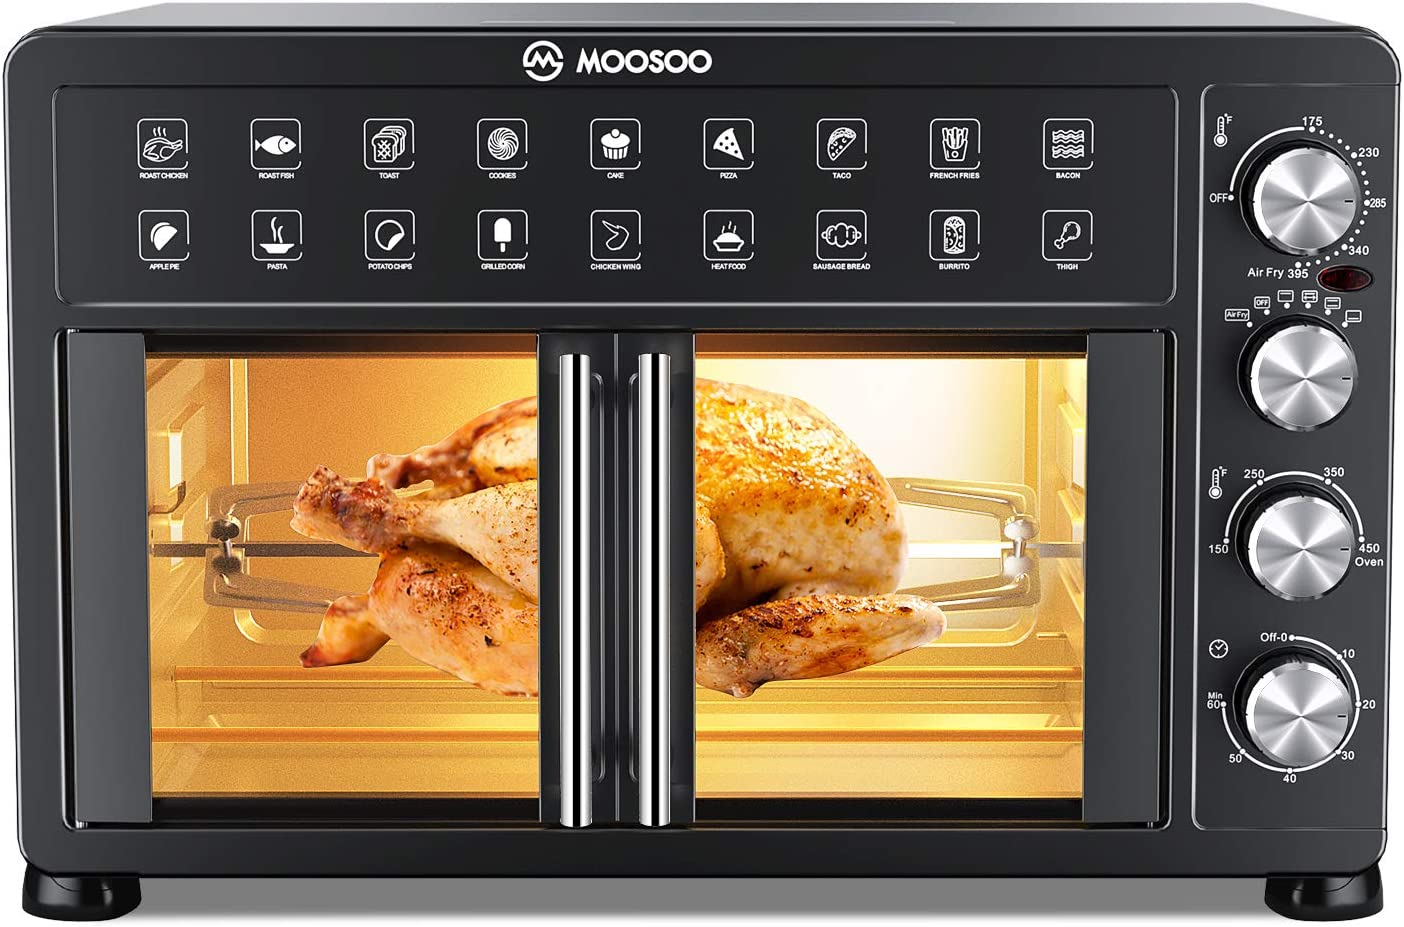 MOOSOO Large Air Fryer Oven, 30QT Toaster Convection Oven Countertop French Door, Toaster Oven Air Fryer Combo with Bake, Broil, Roast, Less oil, Rotisserie Oven Time/Temp Dial, 6 Accessories,Cookbook